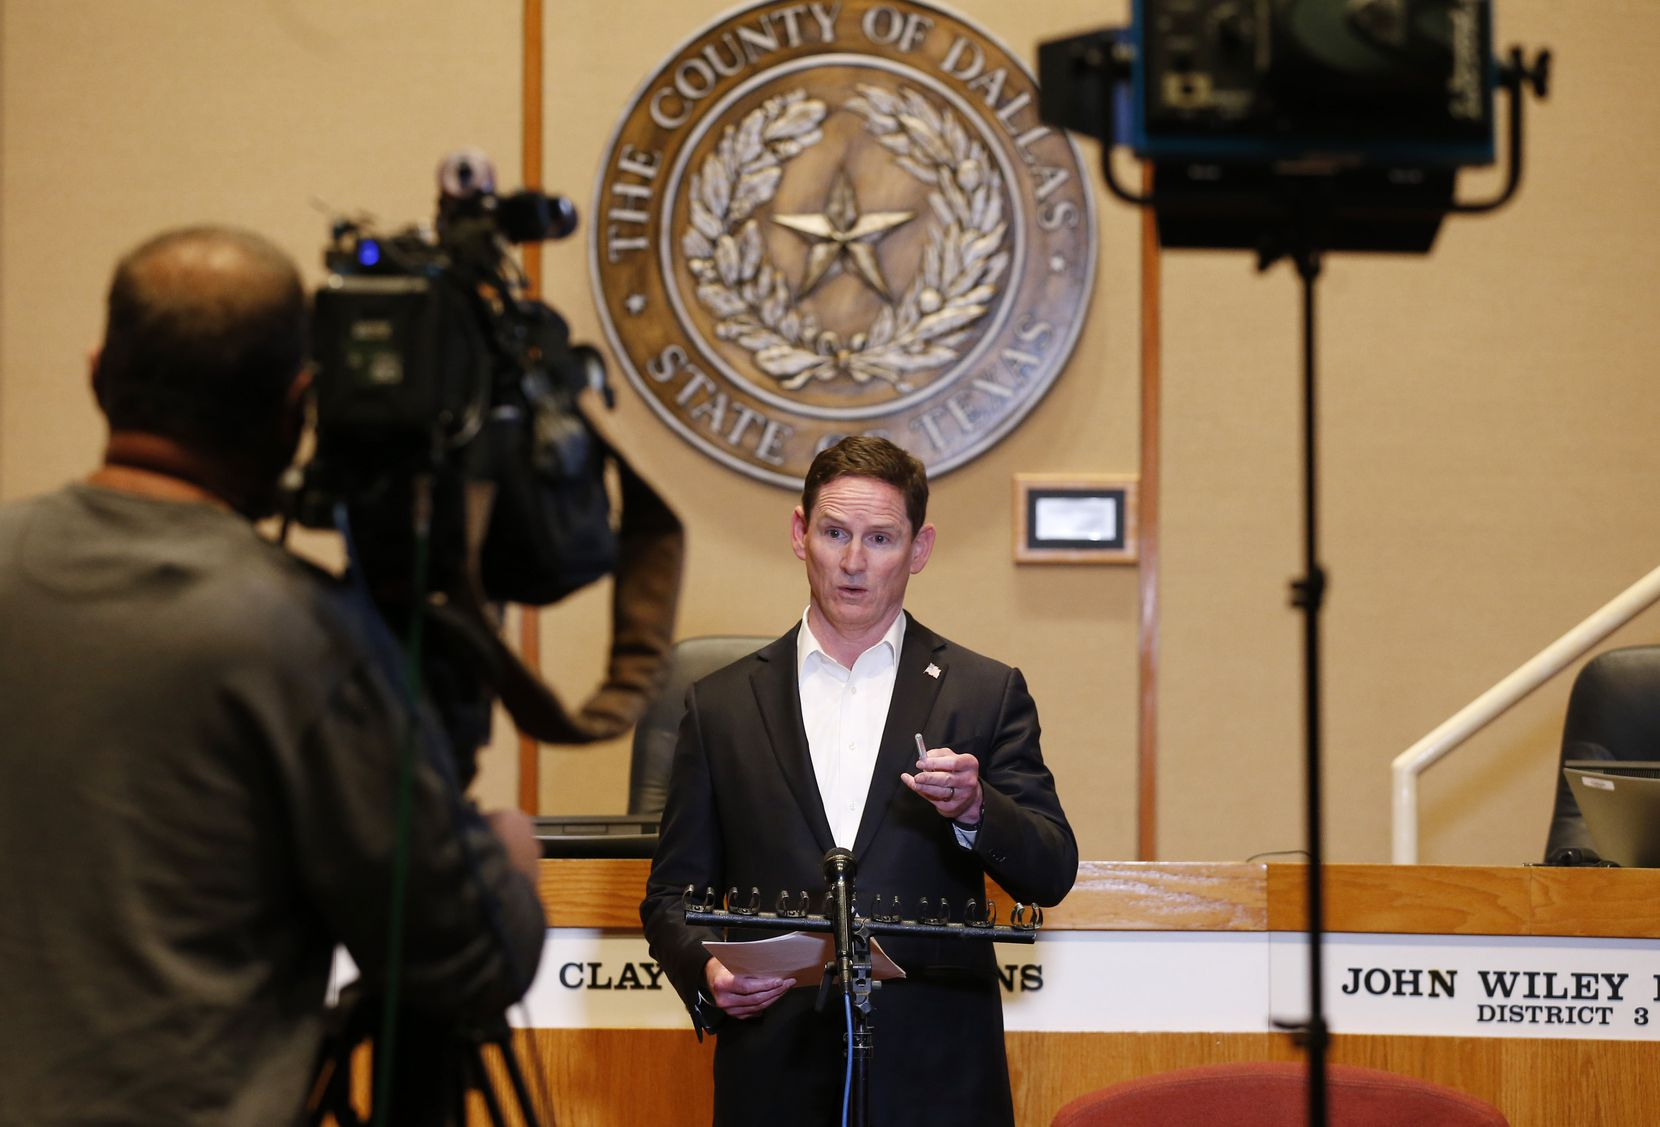 Dallas County Judge Clay Jenkins spoke during a news conference updating an amended order for the COVID-19 response at the Dallas County Administration Building on March 21, 2020.